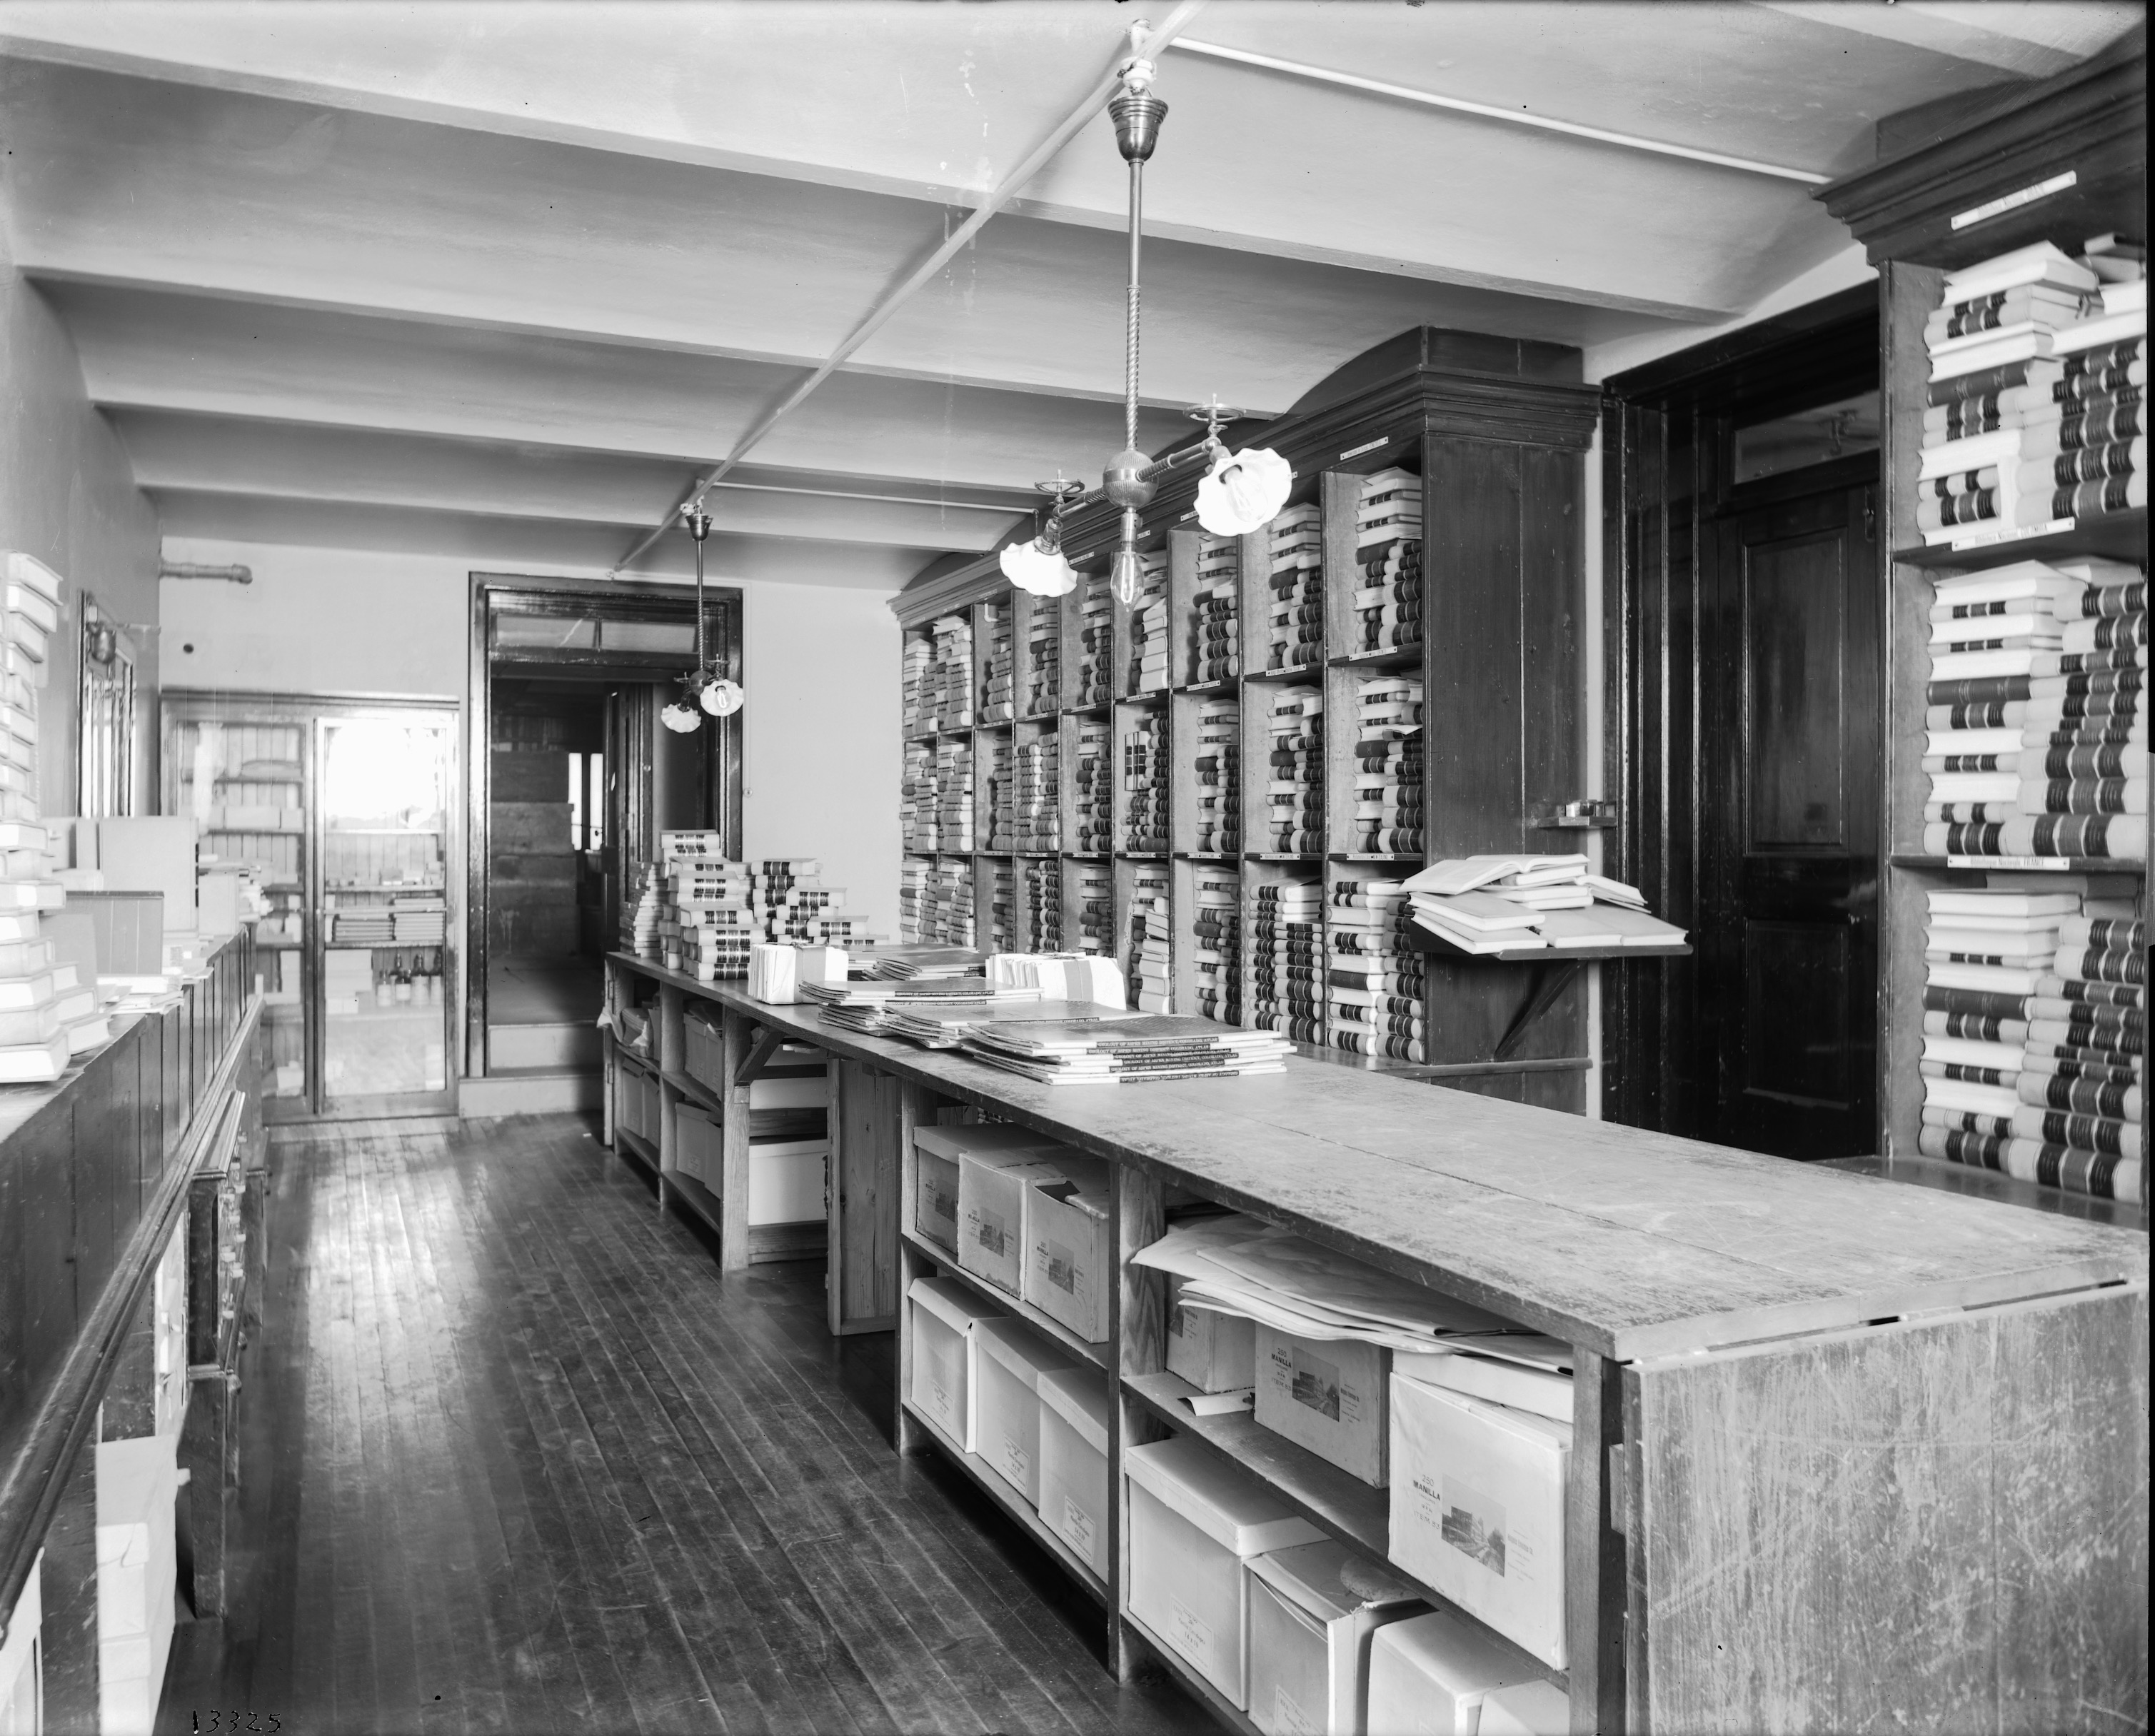 Black and white image of rows of shelves with boxes and books.